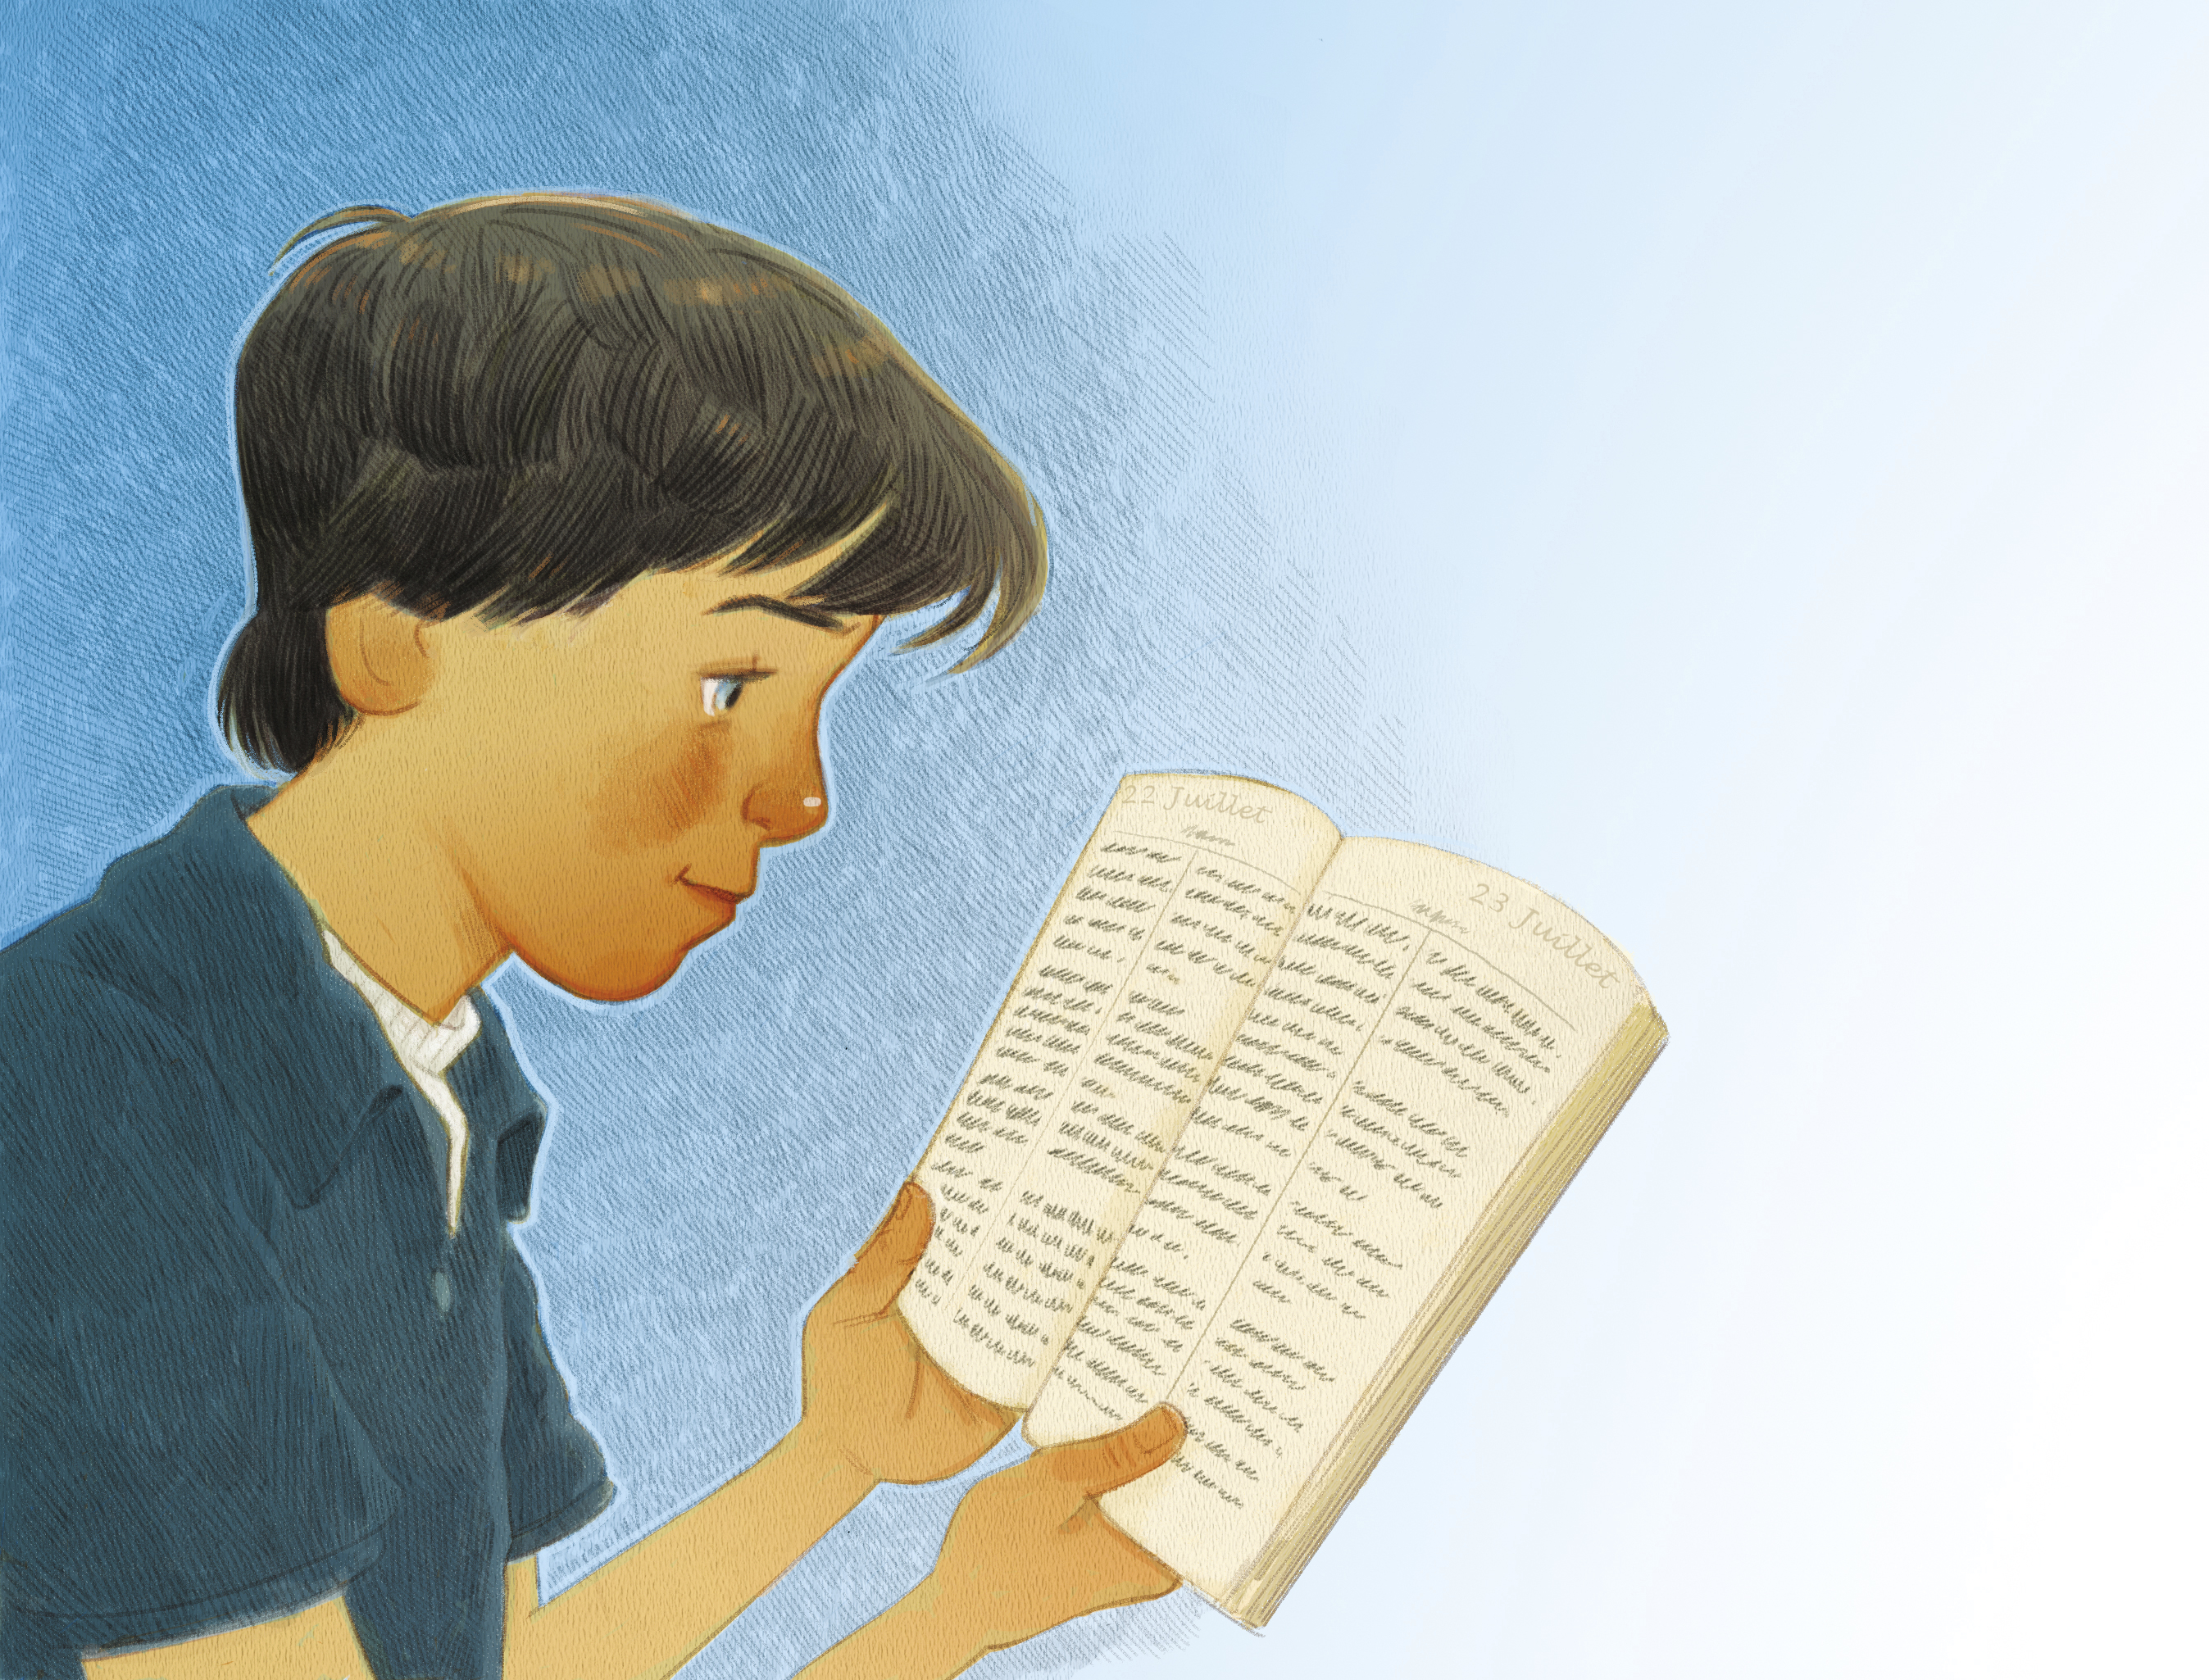 A boy holds open a set of scriptures and reads from them.